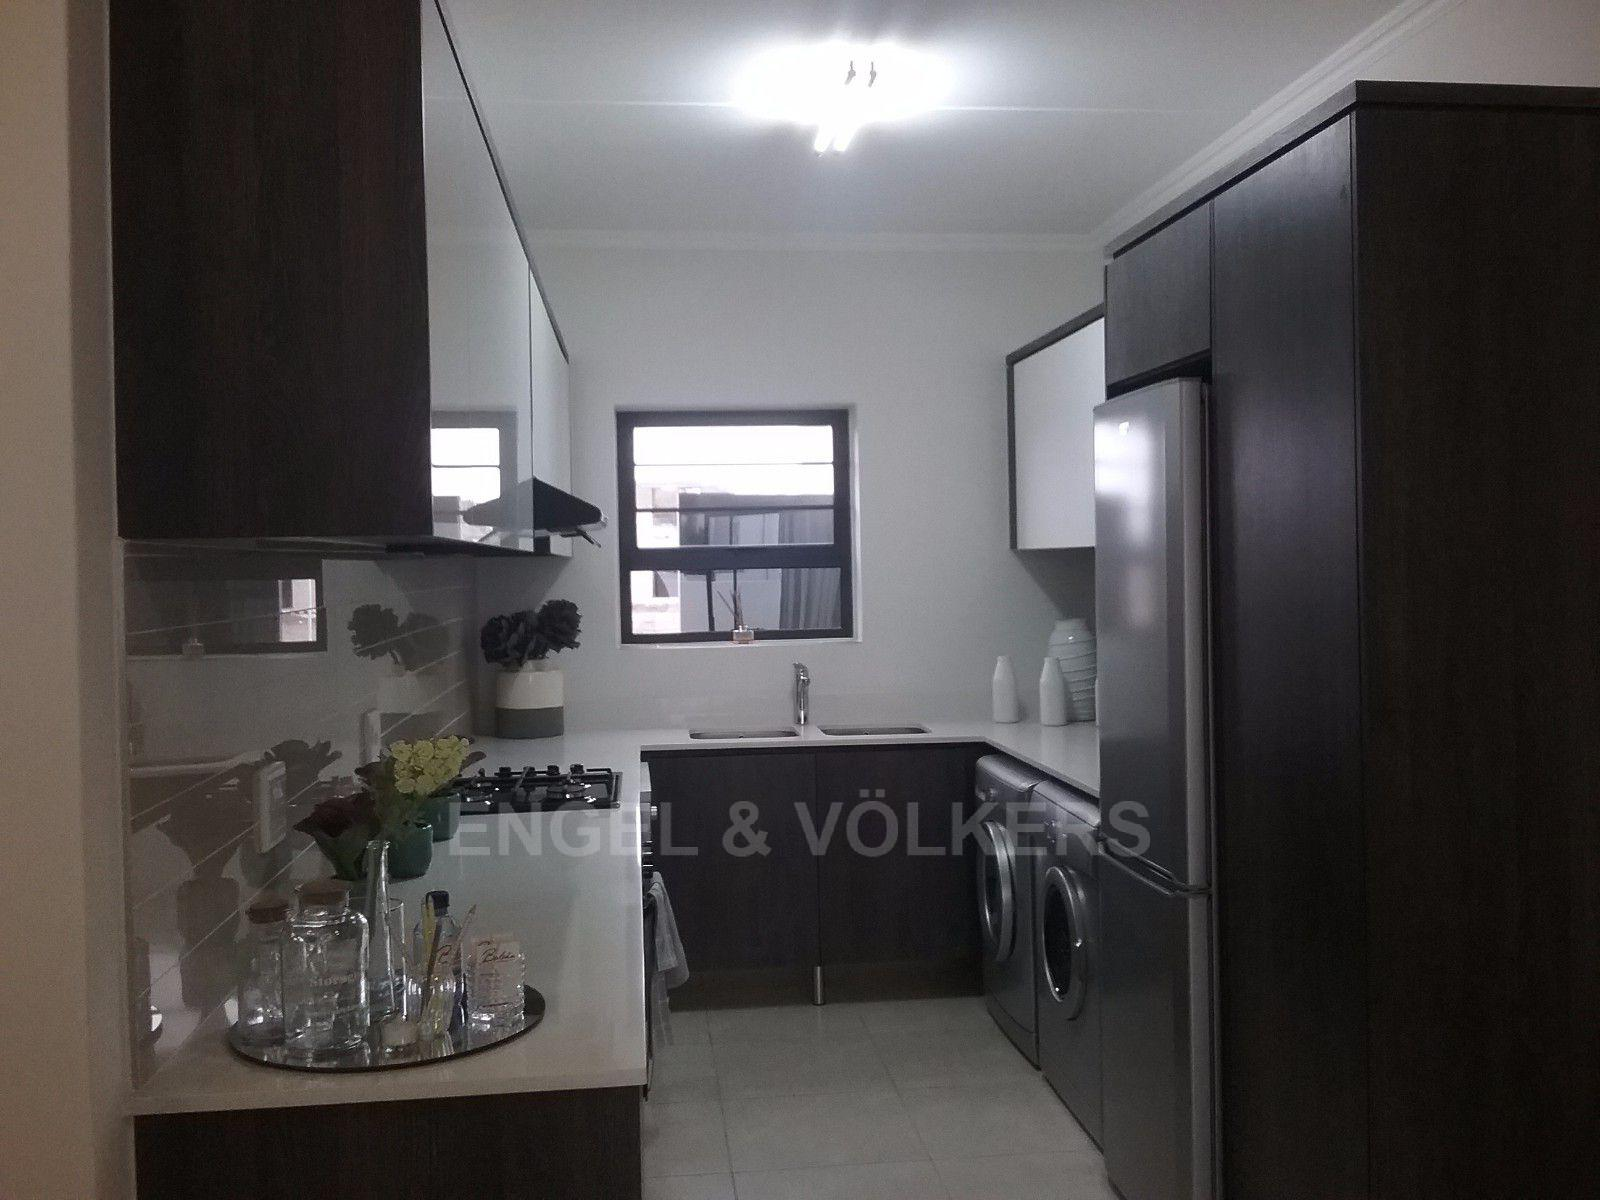 Apartment in Parklands North - 20160916_080333_6VwIn6x.jpg